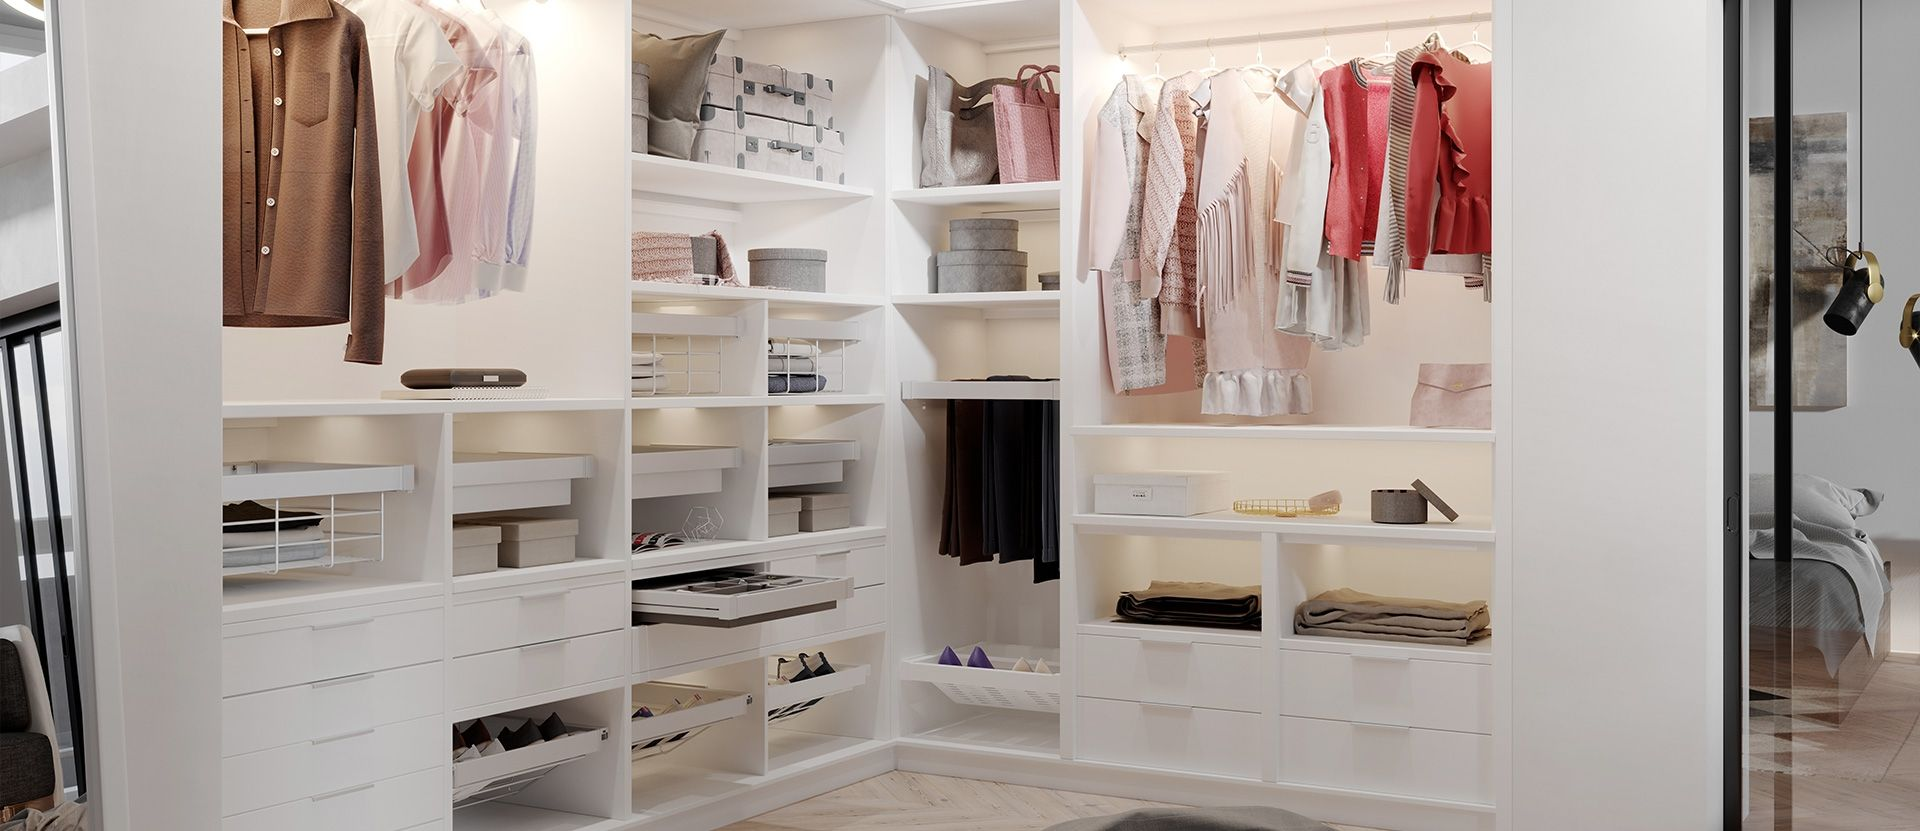 5 steps to an ideal wardrobe